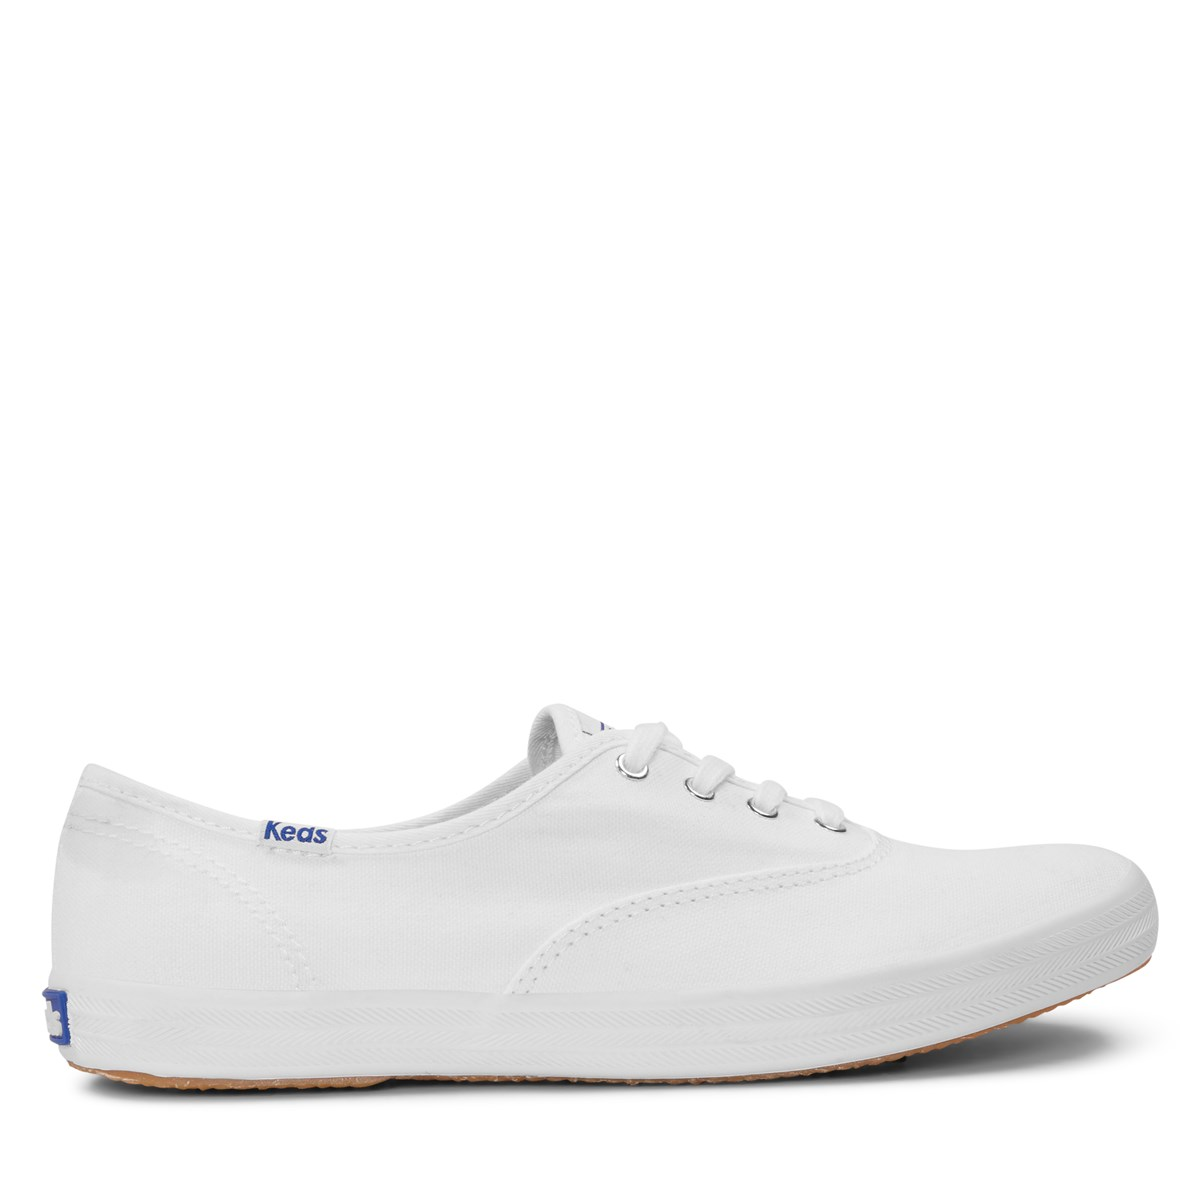 b4c3aeadeec4 Women s Champion Oxford CVO White Leather Sneaker. Previous. default view  ...